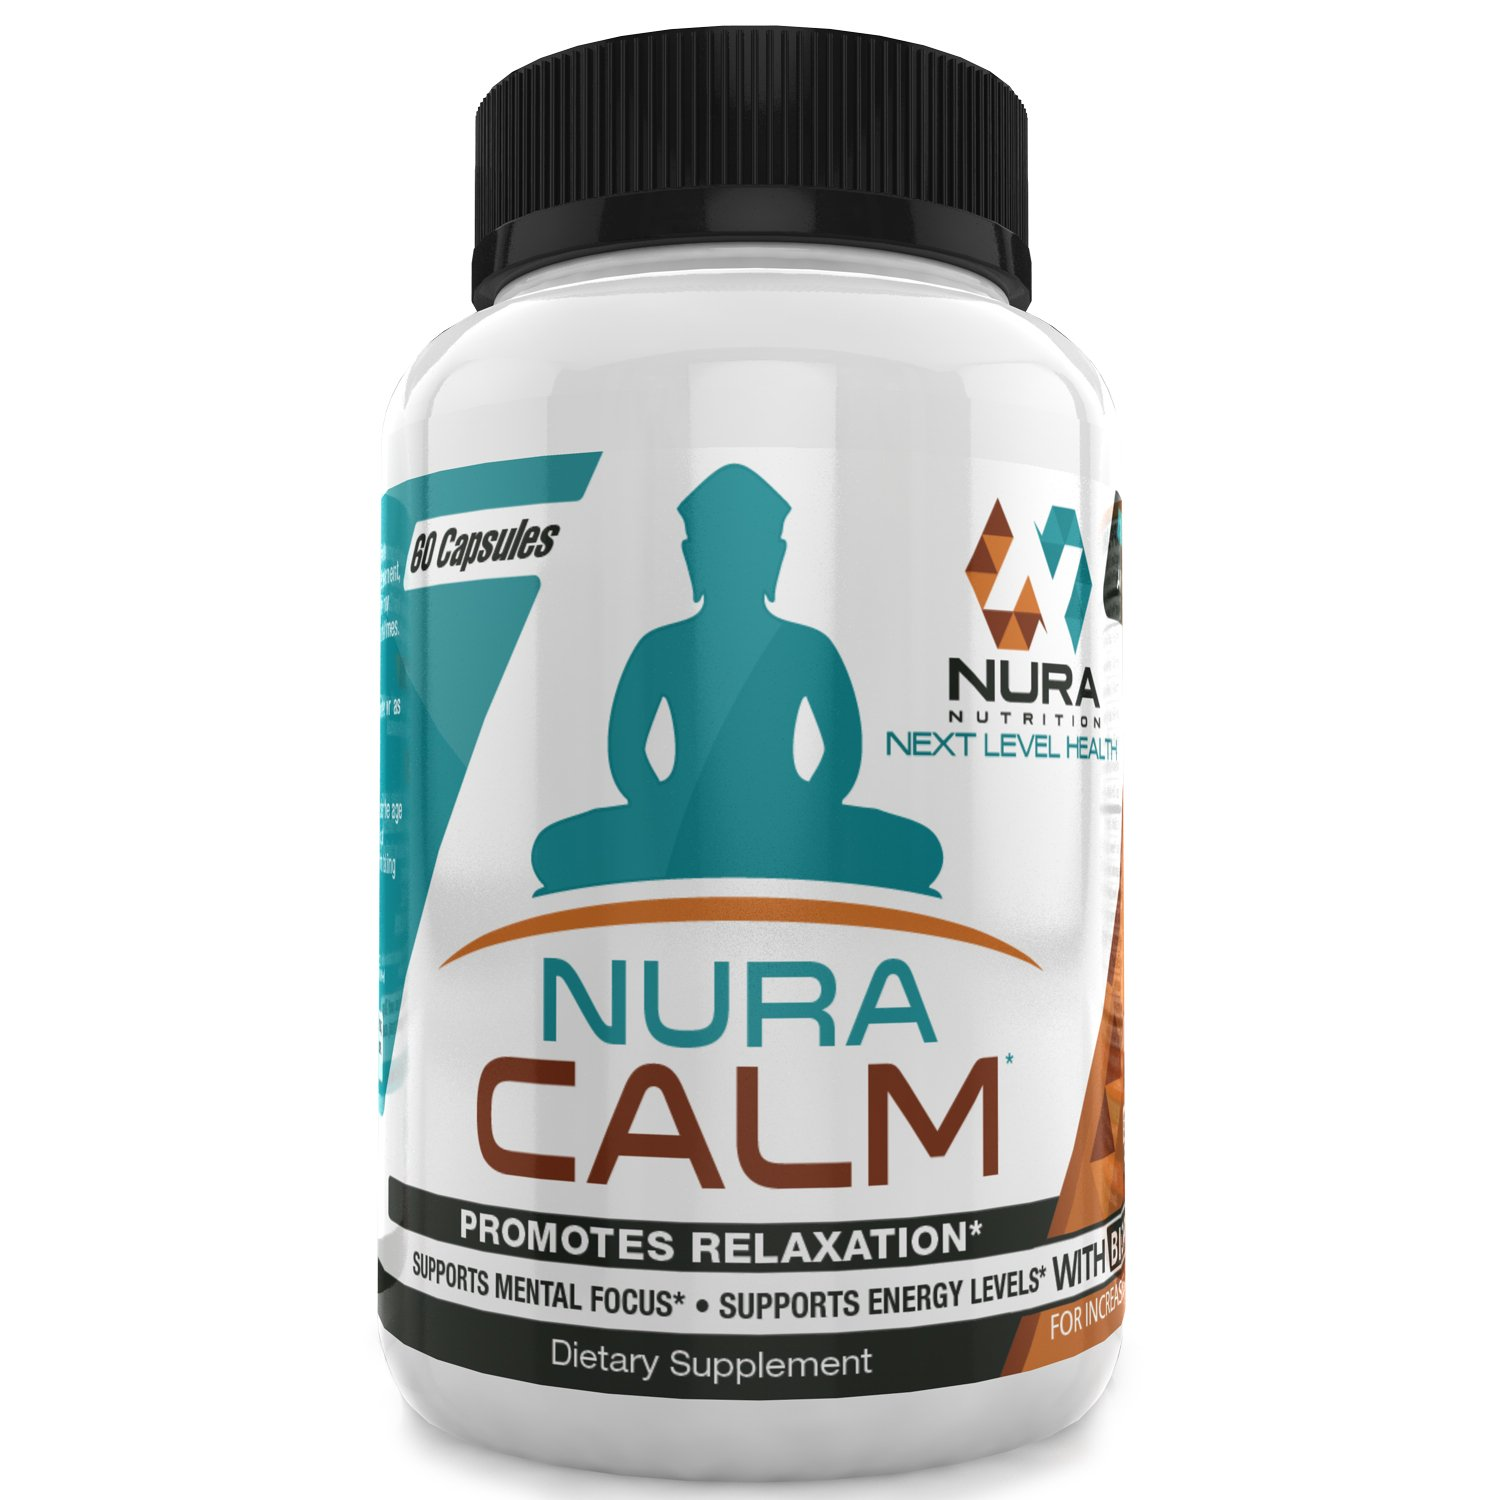 Nura Calm for Focus, Energy, Memory & Clarity, All Natural Nootropic Brain Booster Calming Supplement Sharpens Mind & Elevates Mood - Herbal Blend & Vitamin B Complex